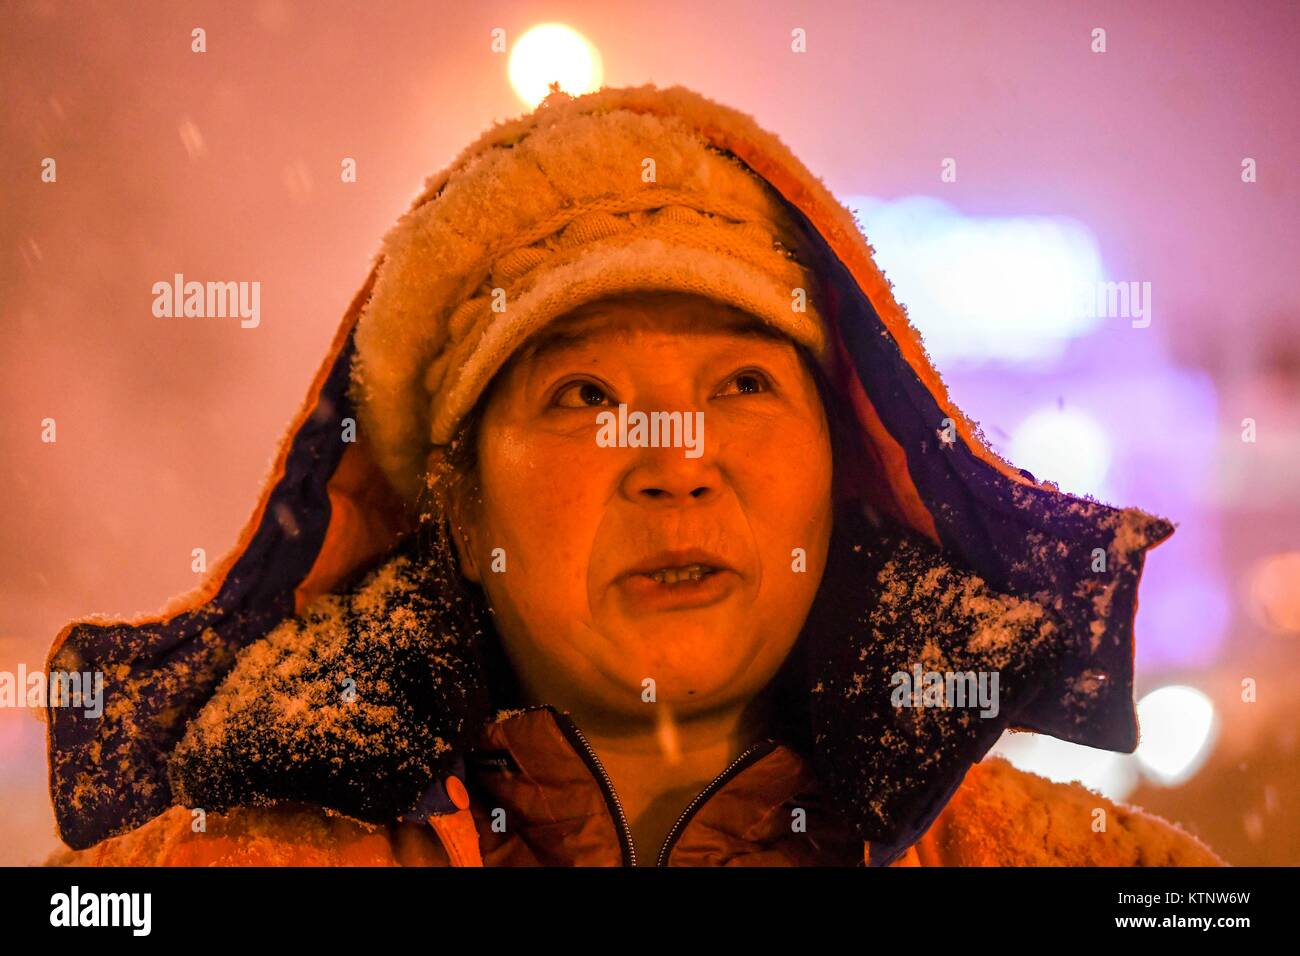 Urumqi, China's Xinjiang Uygur Autonomous Region. 28th Dec, 2017. Cleaner Li Fengying clears snow in the early - Stock Image